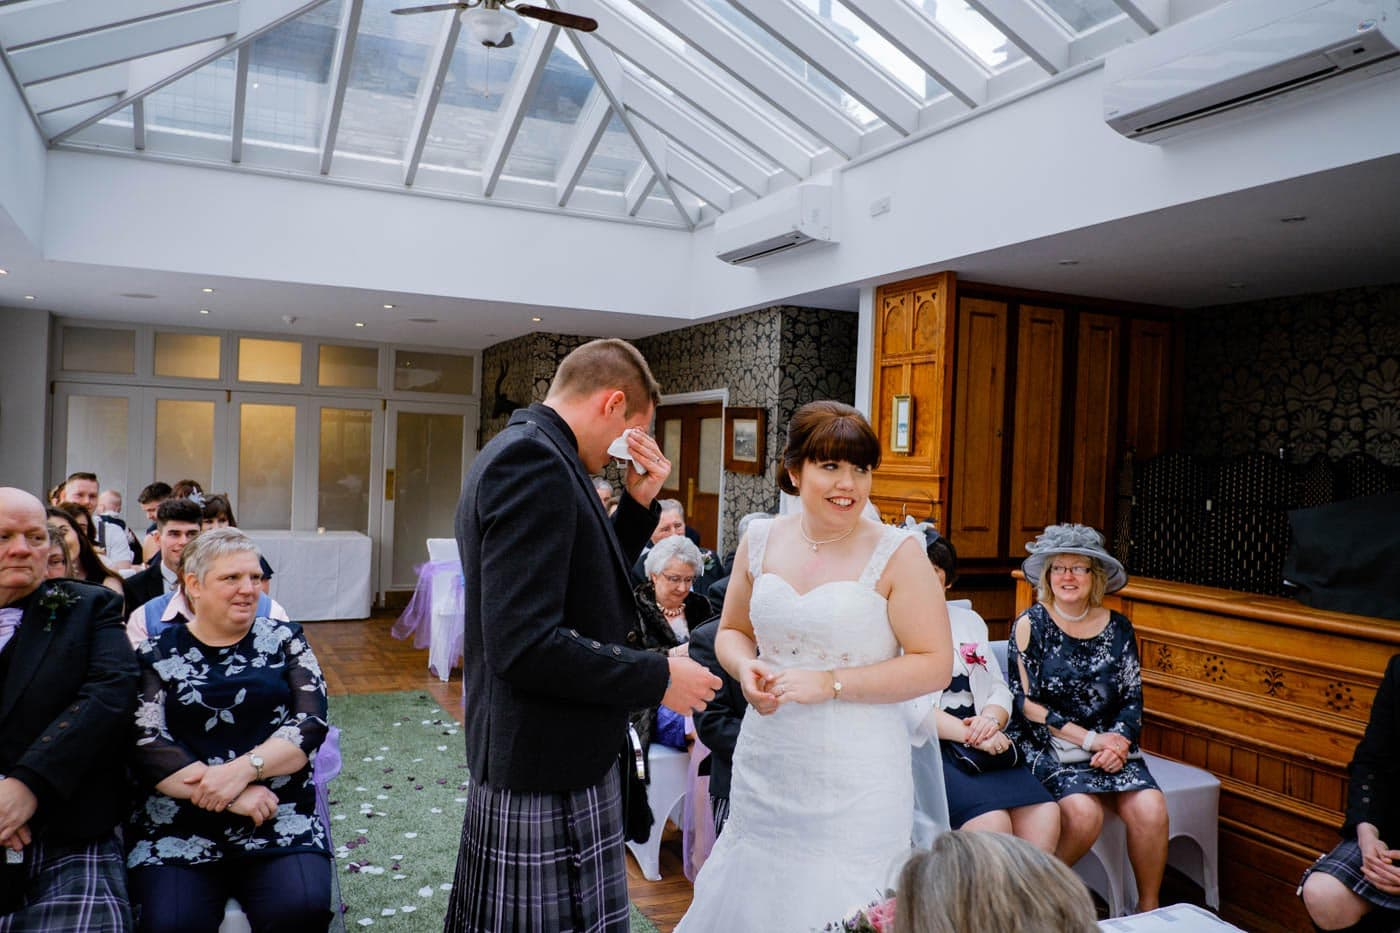 Scottish groom wiping away a tear during his wedding ceremony at Broadoaks Country House